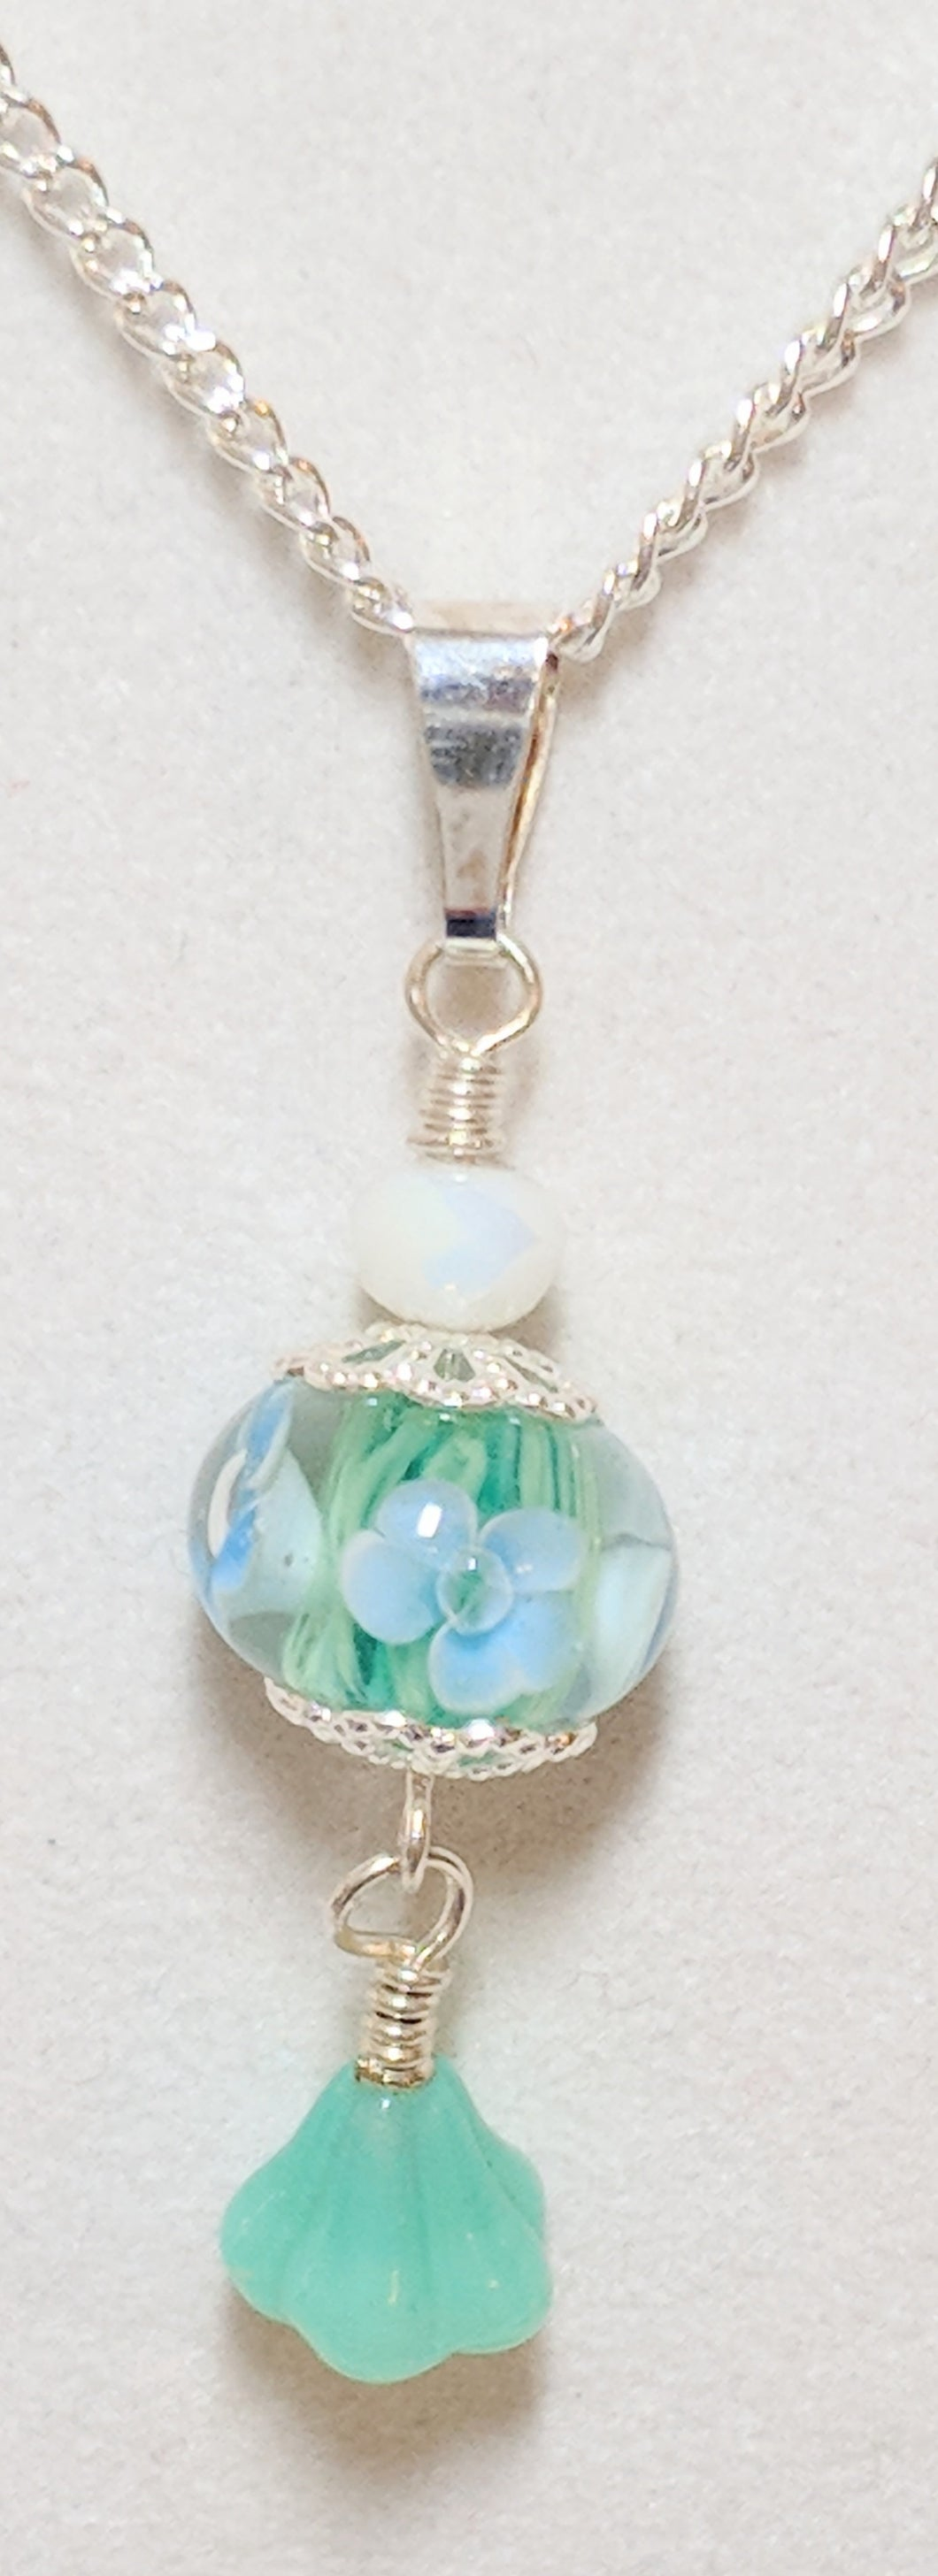 Blue Lamp-worked Glass Flower bead pendant necklace